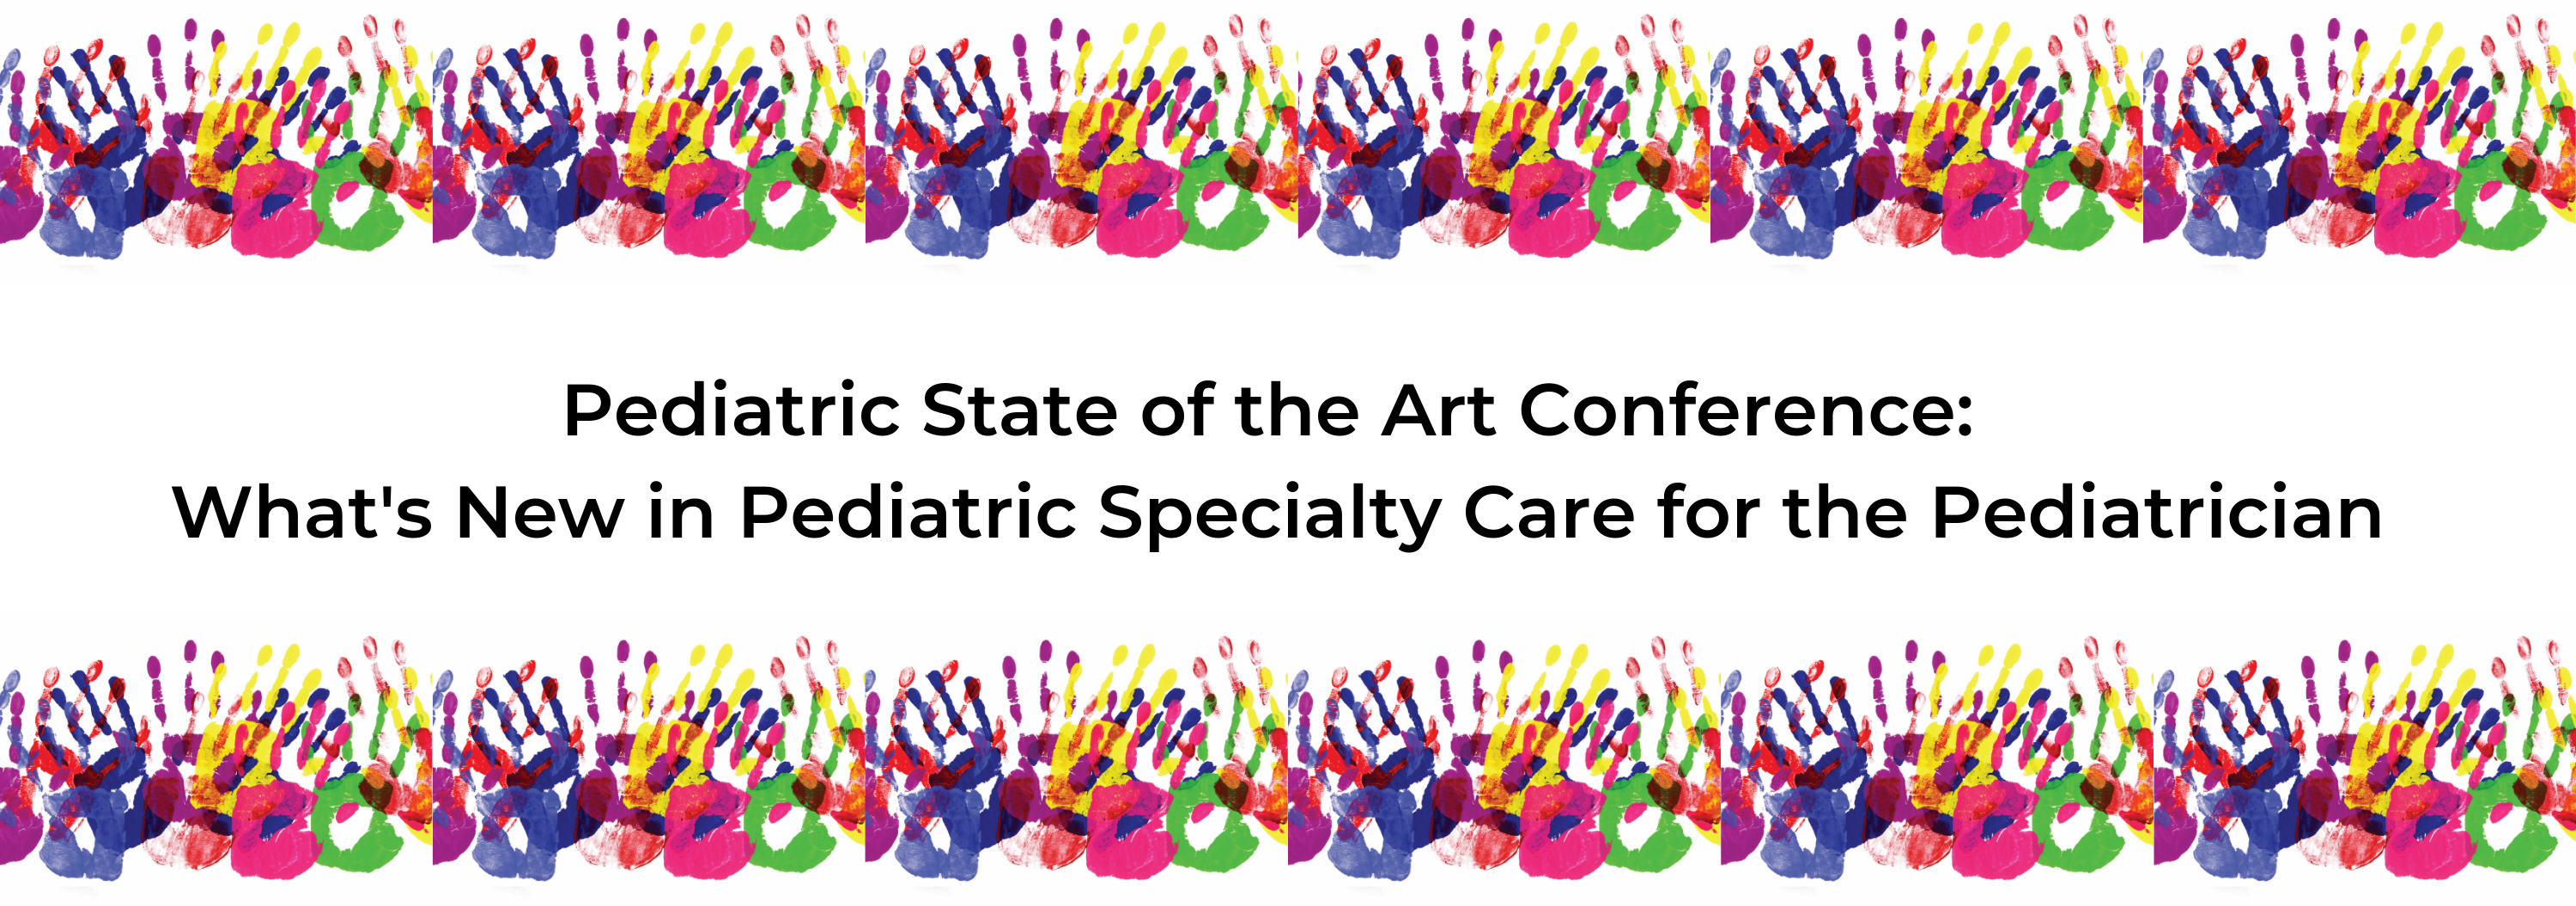 2019 Pediatric State of the Art Conference: What's New in Pediatric